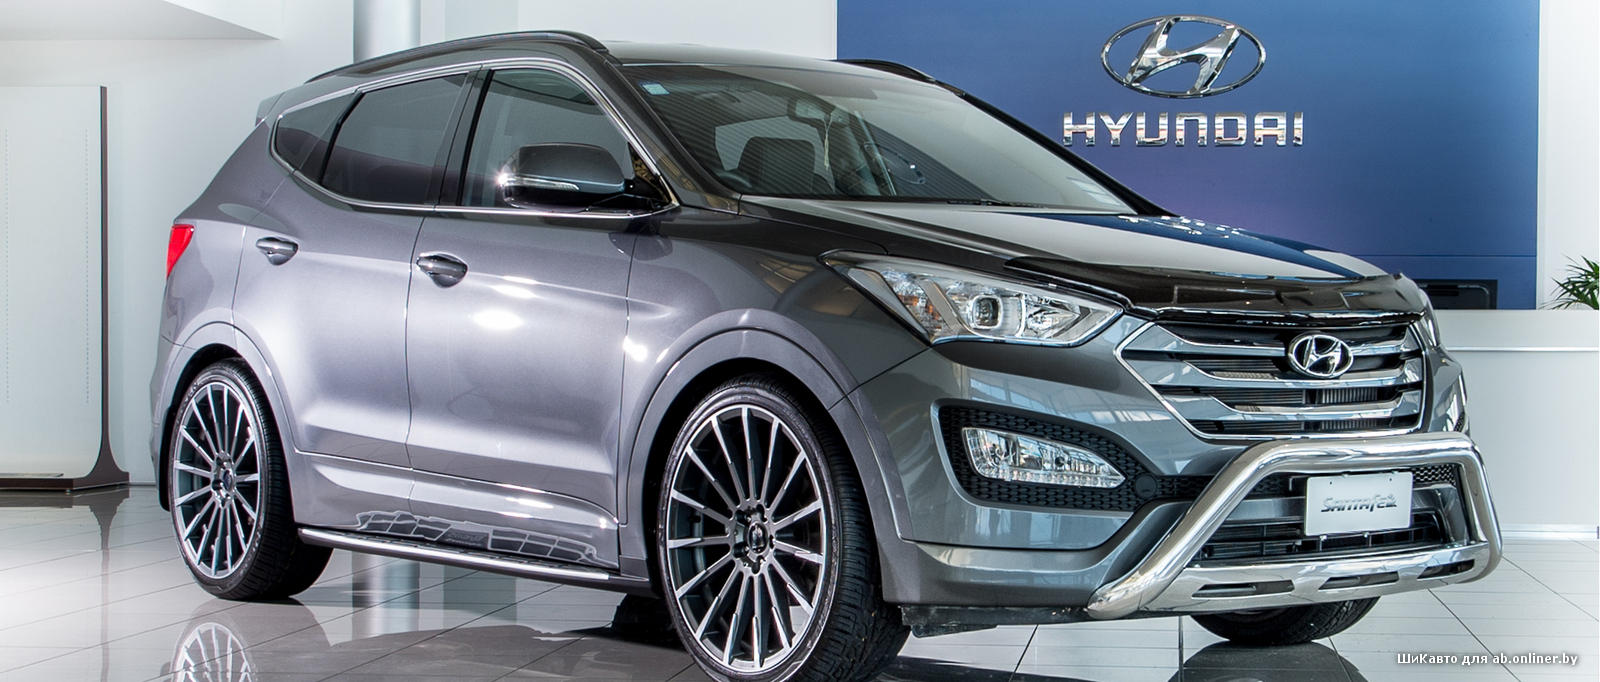 Hyundai Santa Fe 2.4i 6AT AWD